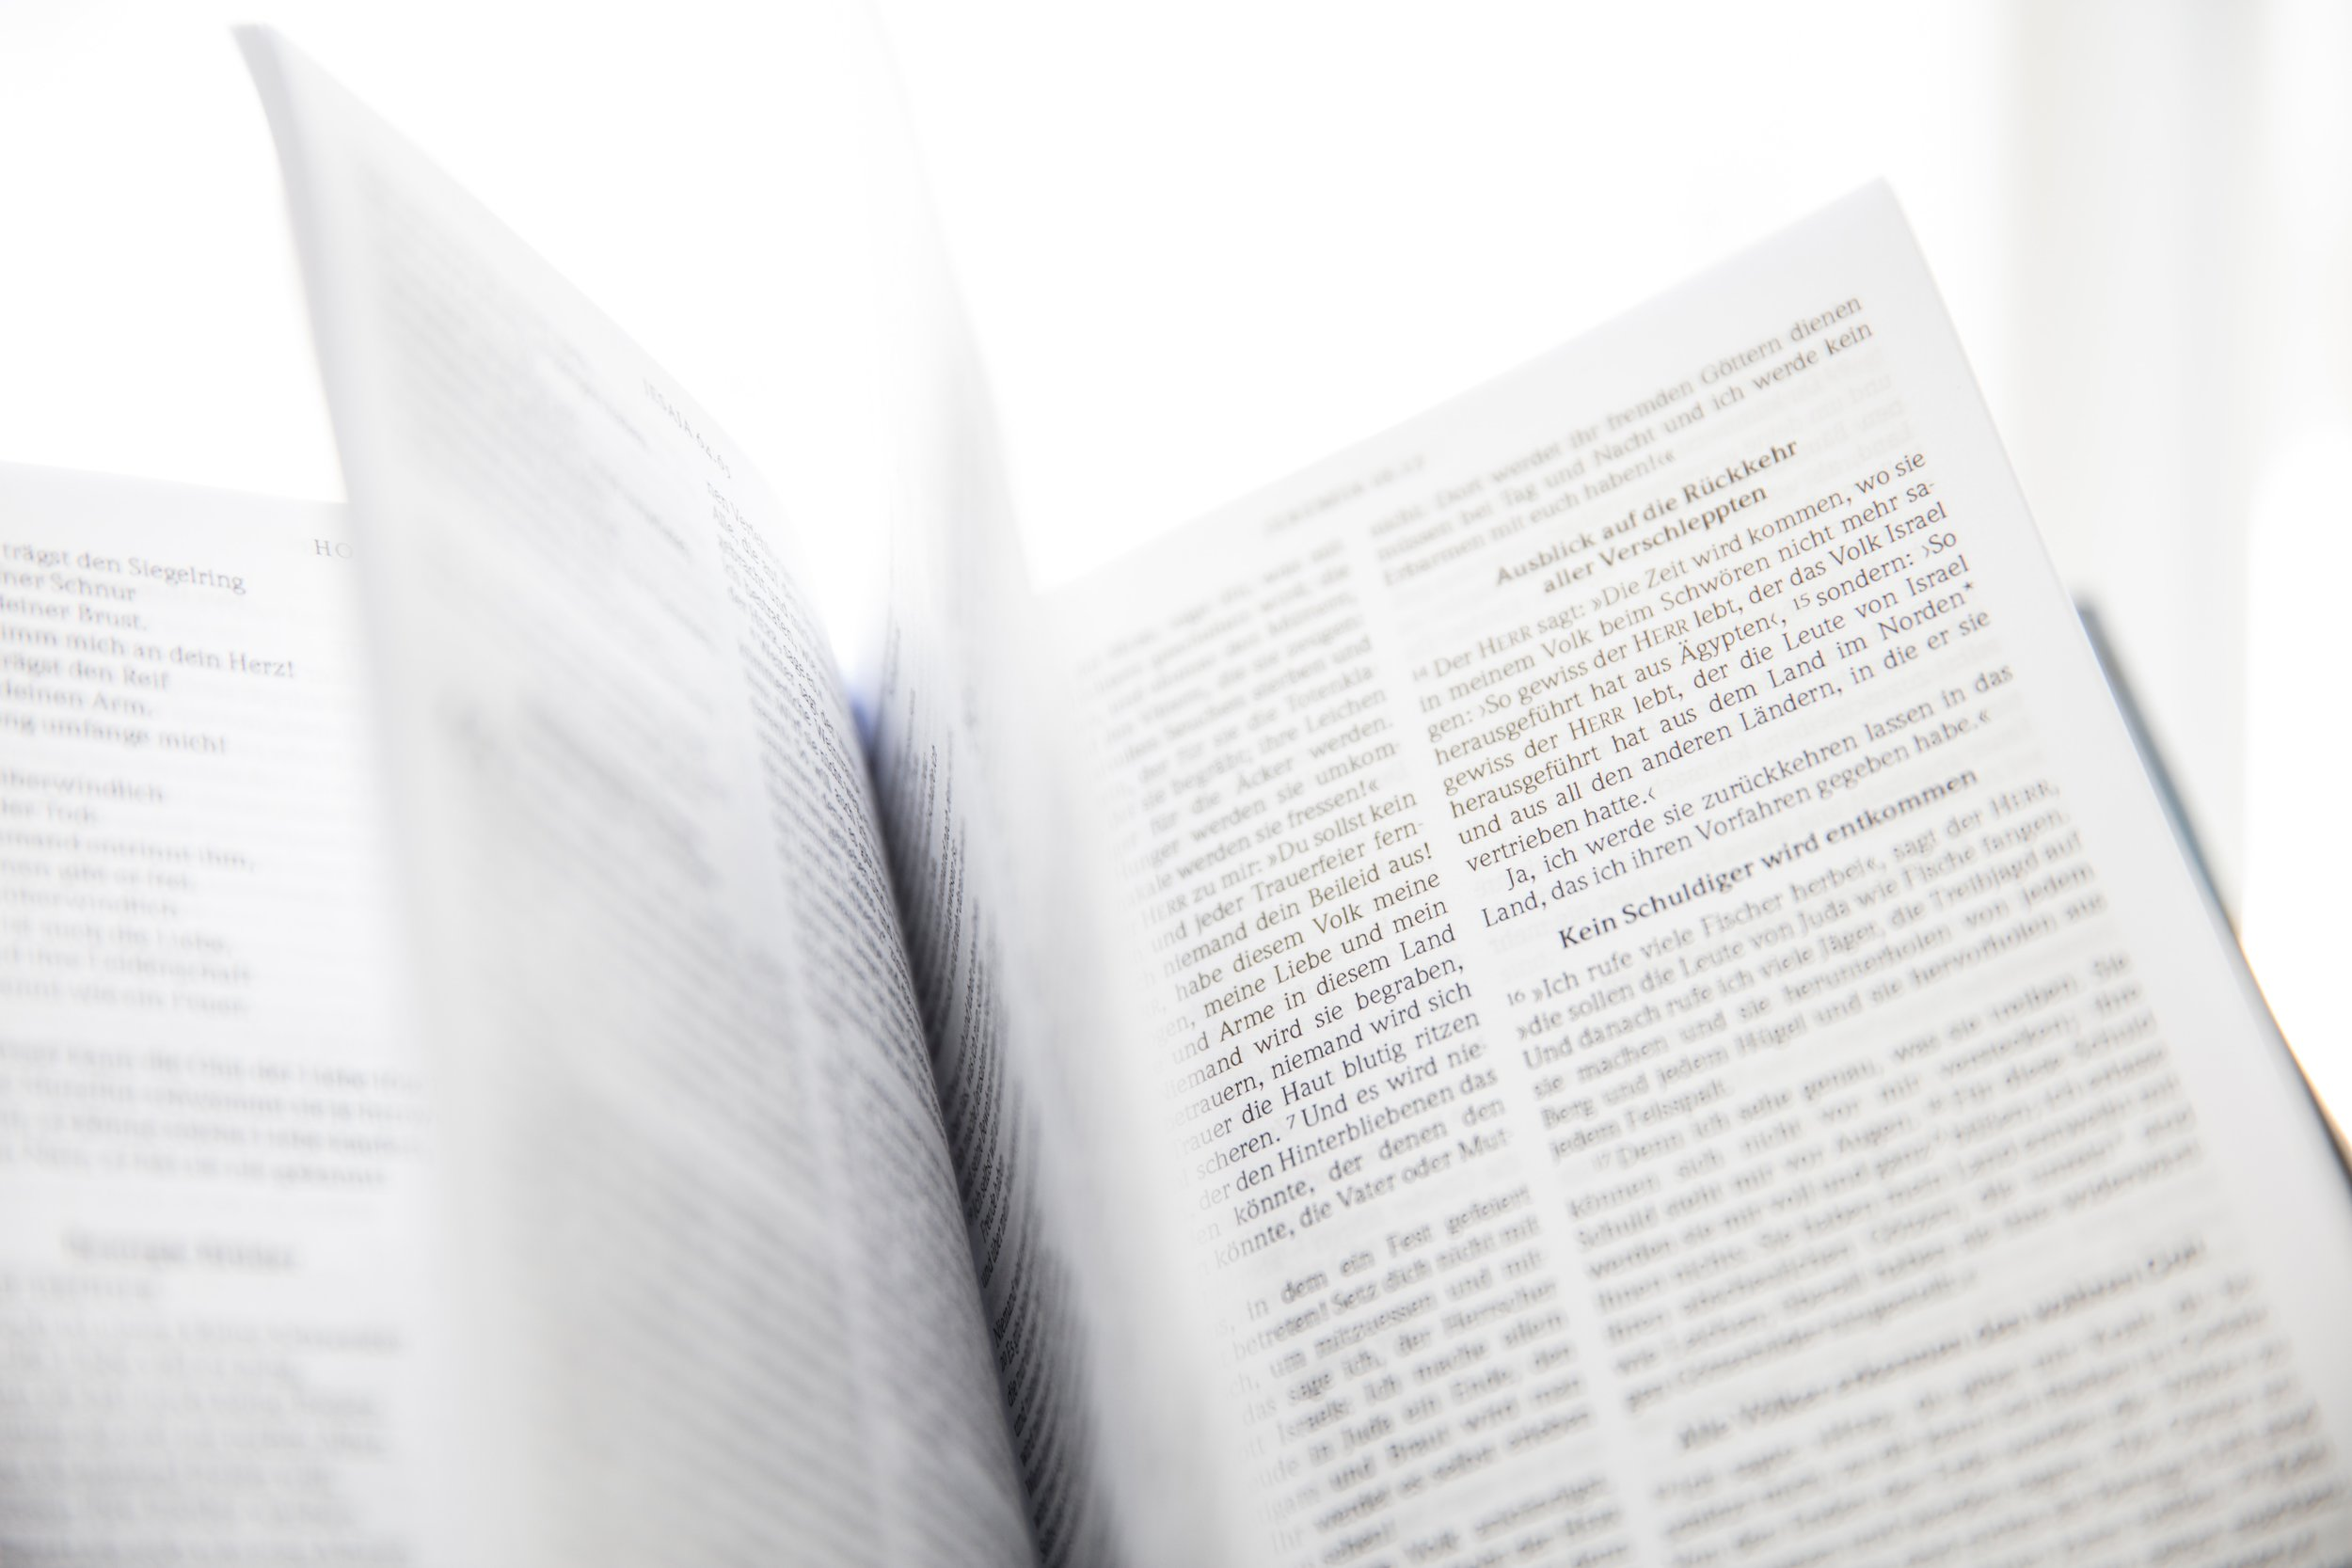 bible-blurred-background-book-954198.jpg